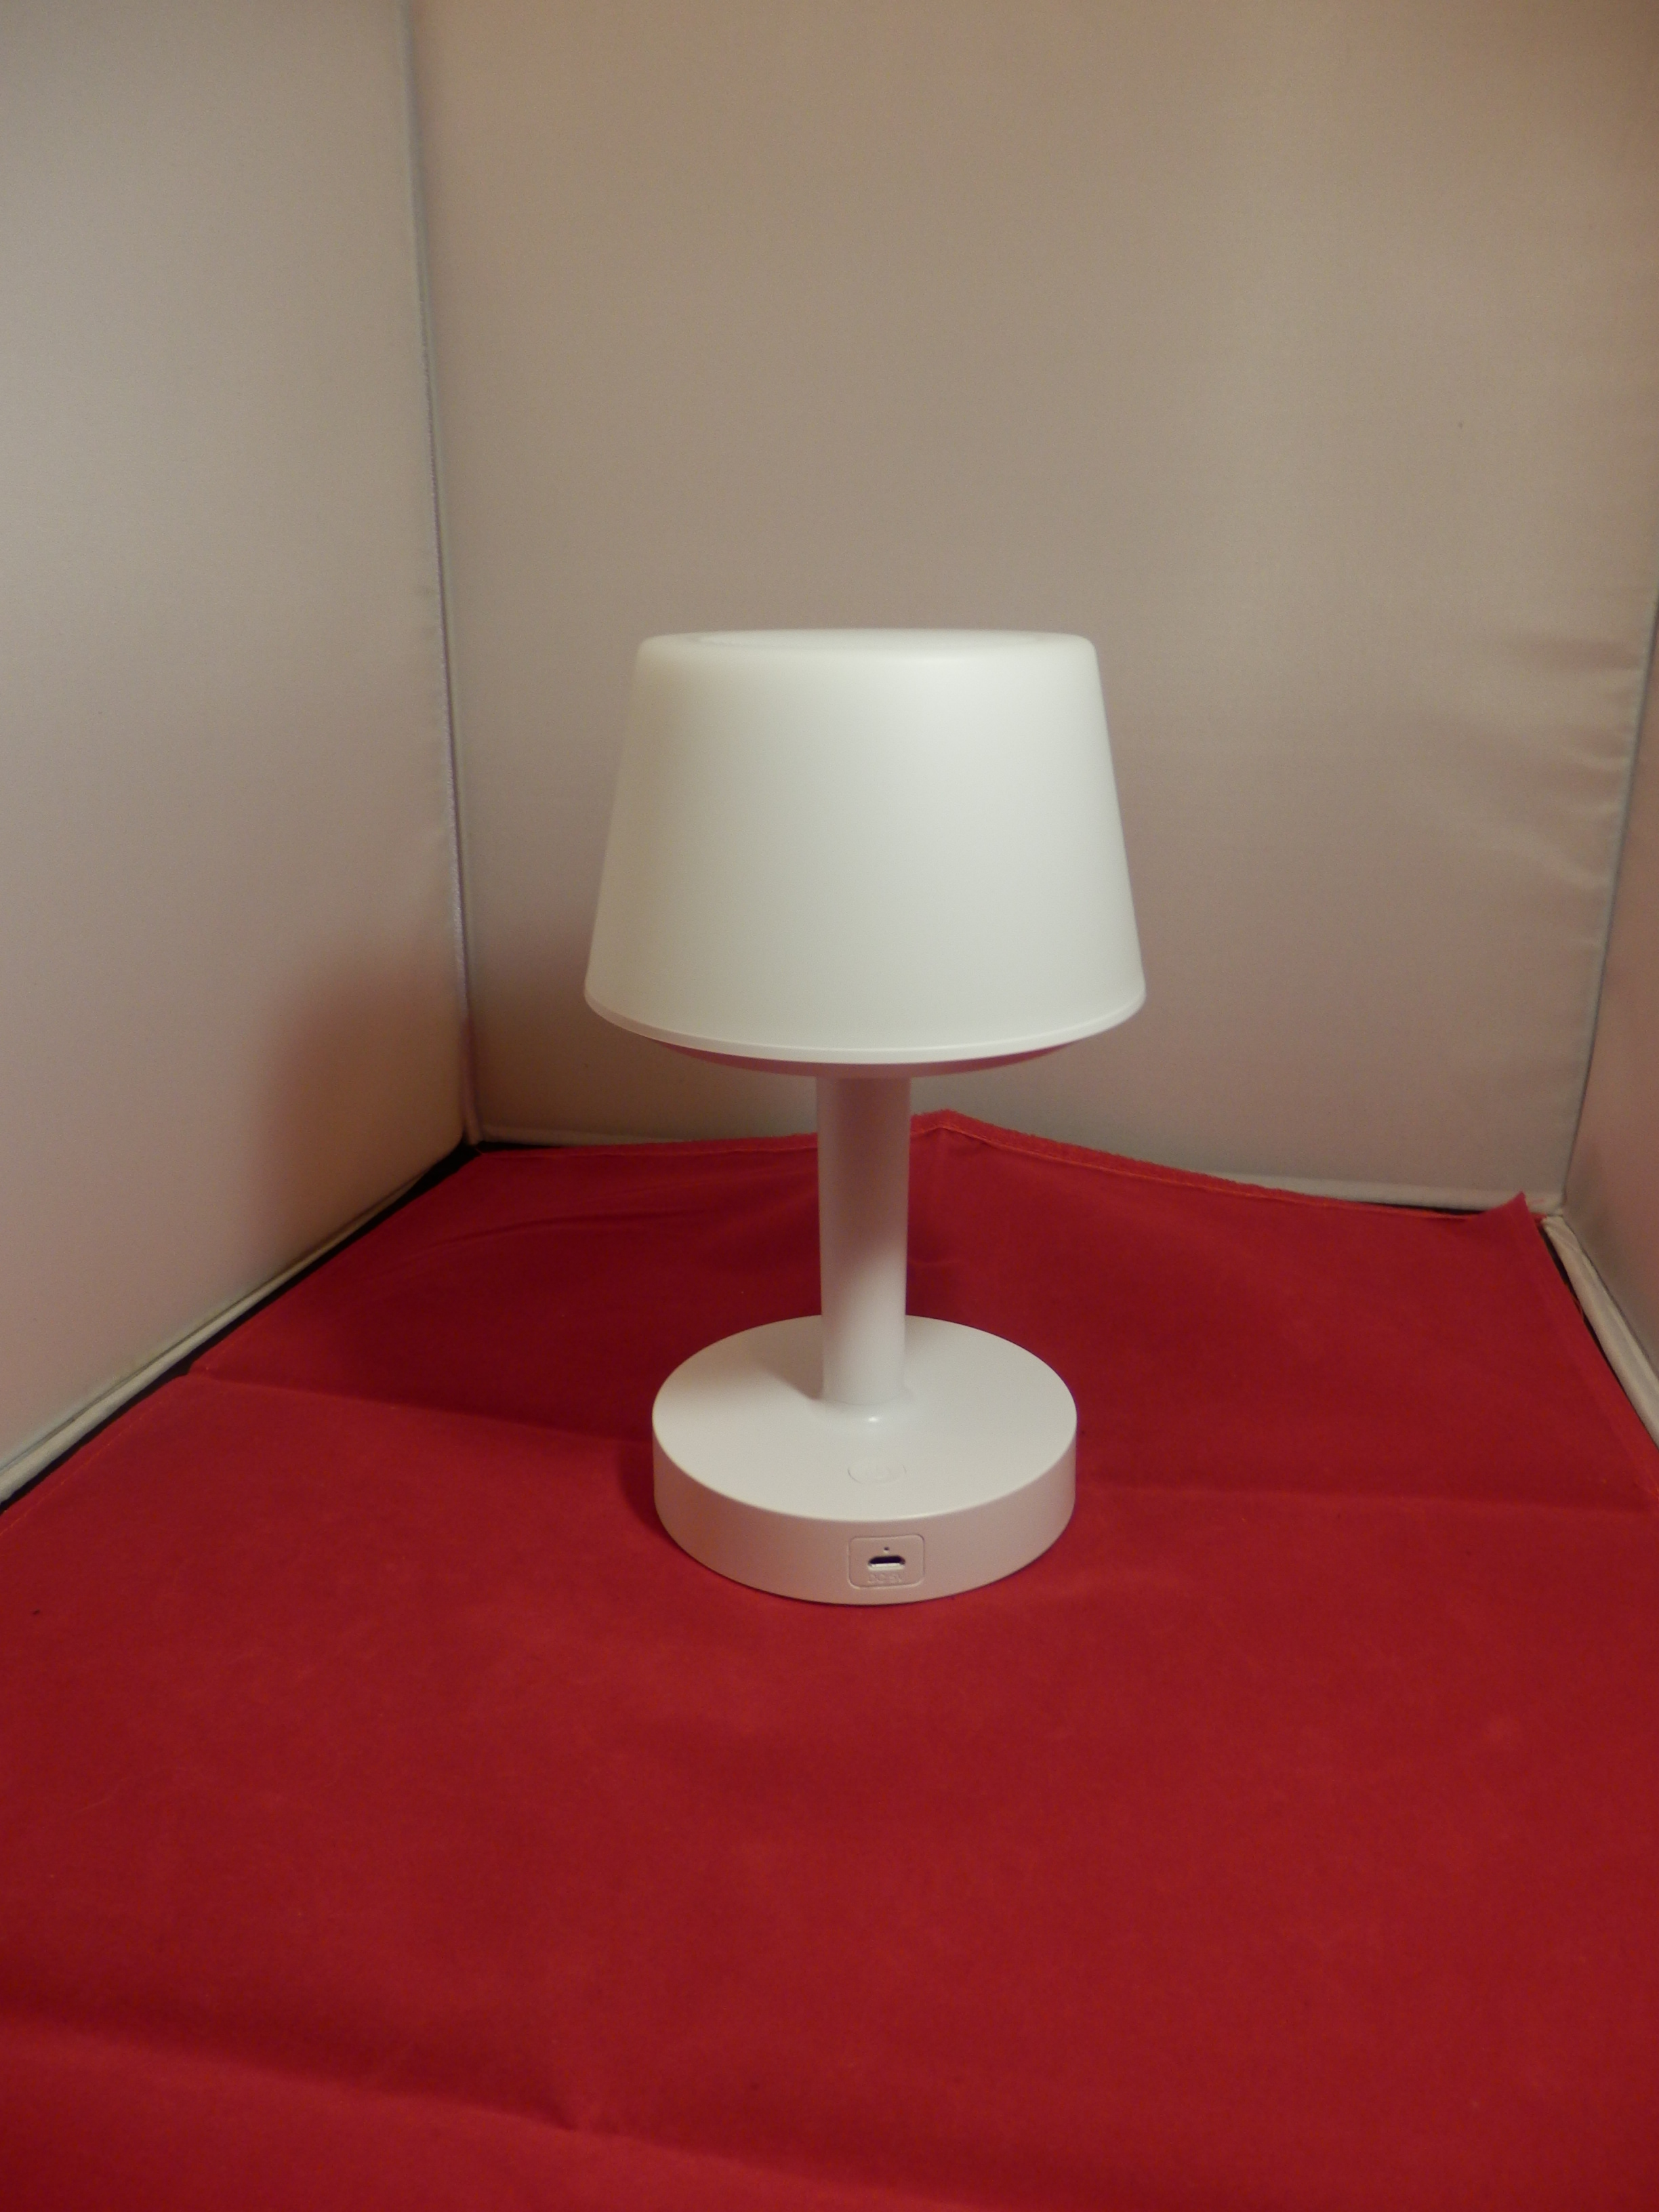 Bedside LED Table Lamp with Bluetooth Speaker and RGB Colour Changing Mode by Uverbon